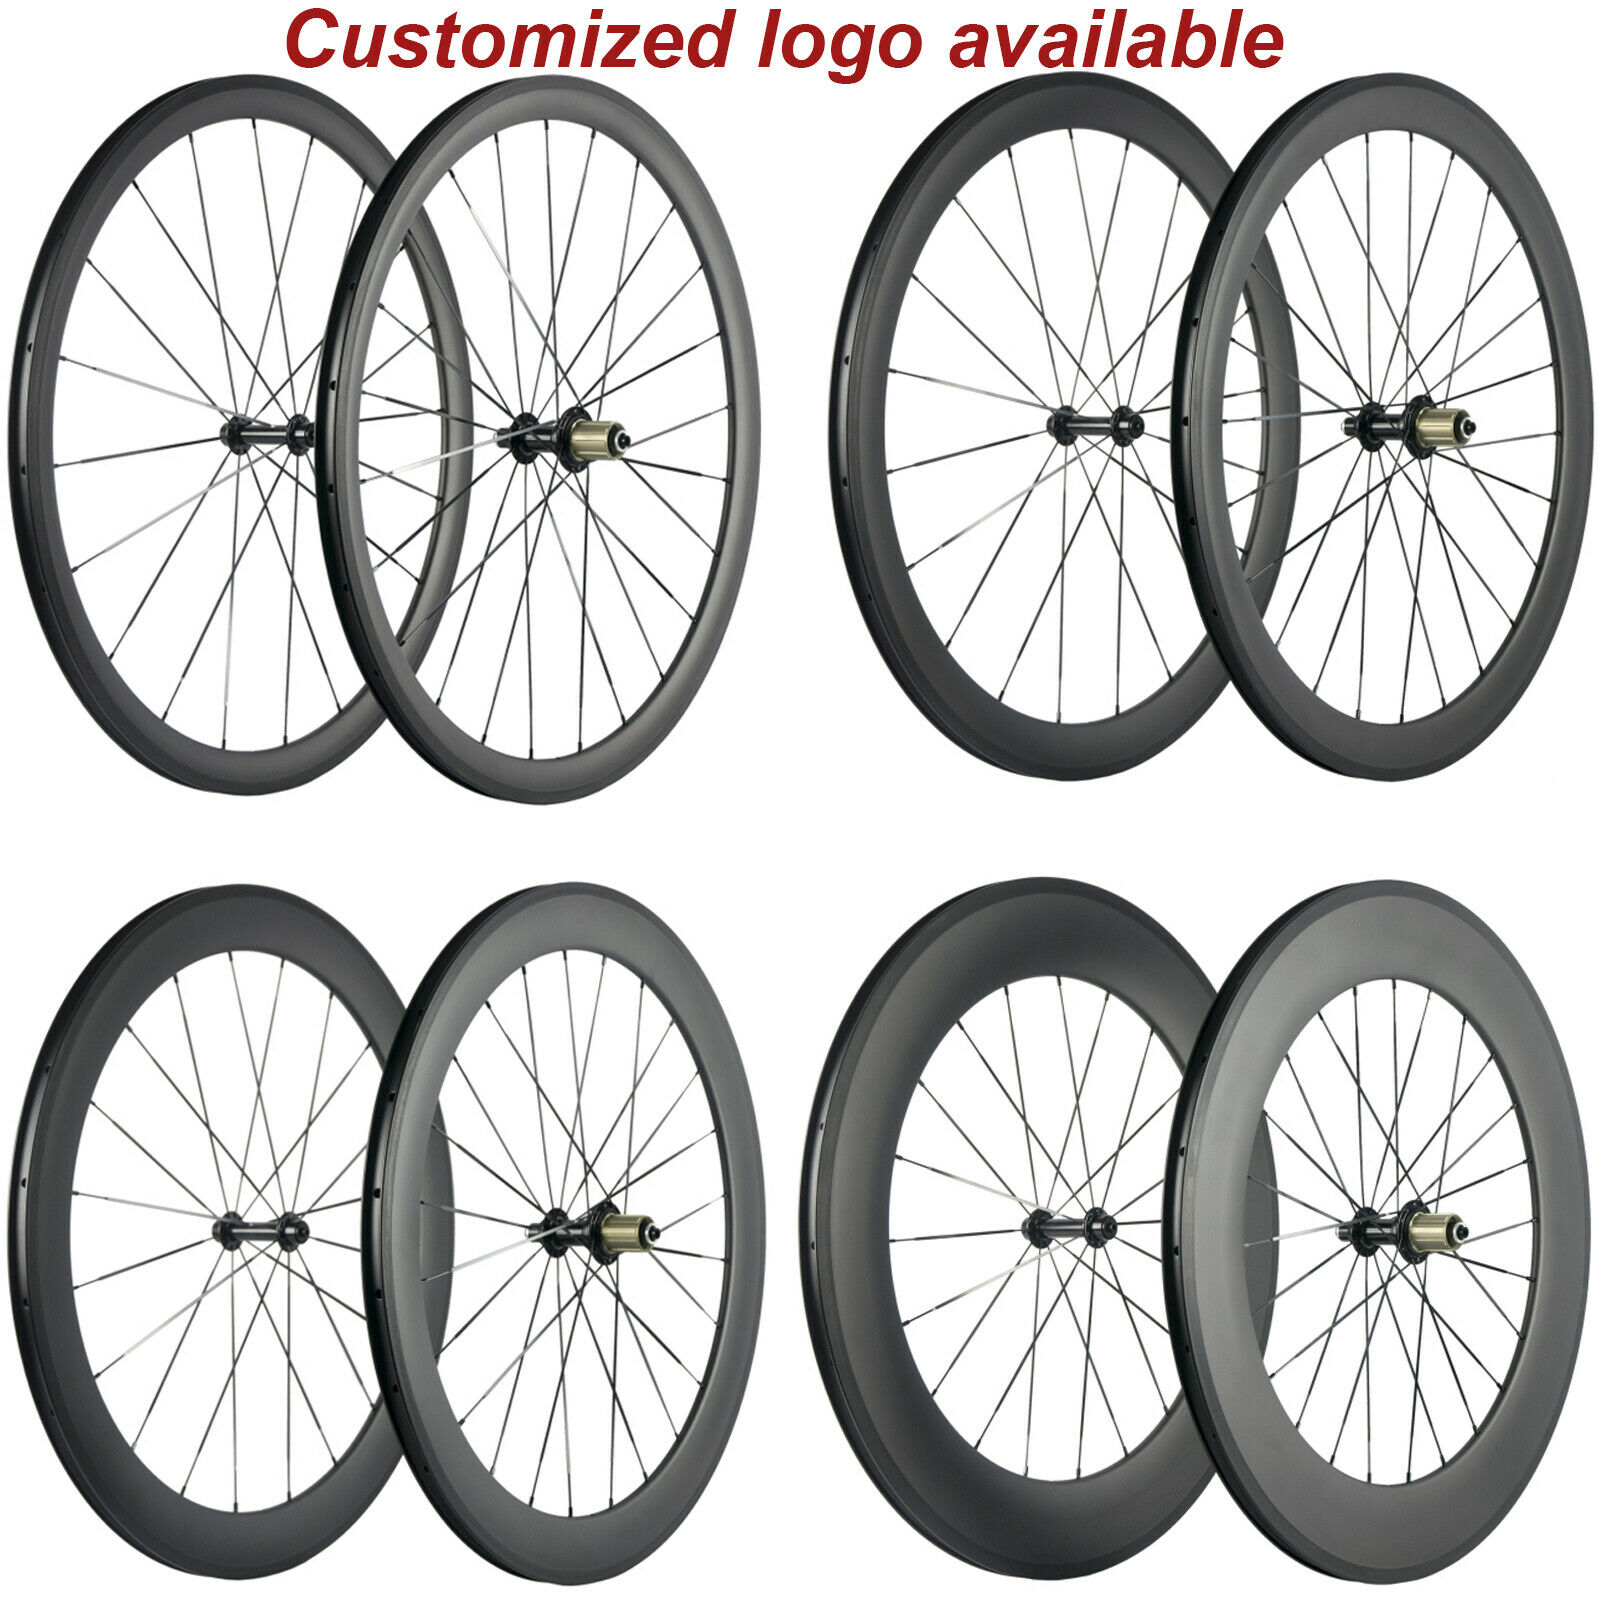 Factory Sales 38 50 60 88mm Carbon Wheels Road Bike Carbon Wheelset Basalt Brake